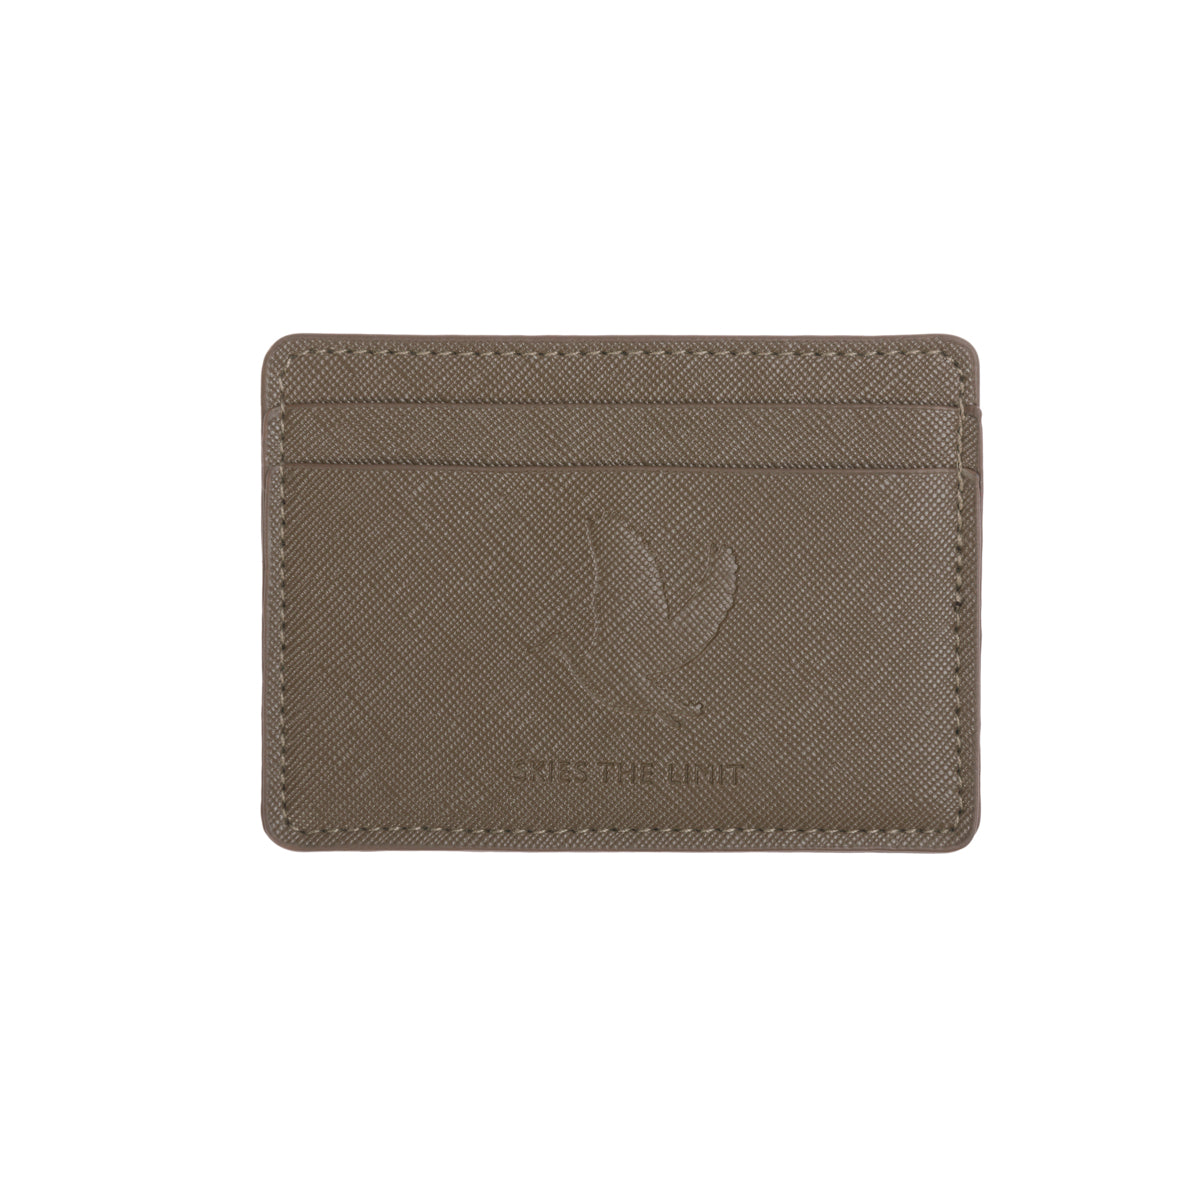 Ducks Card Holder by Sophie Allport